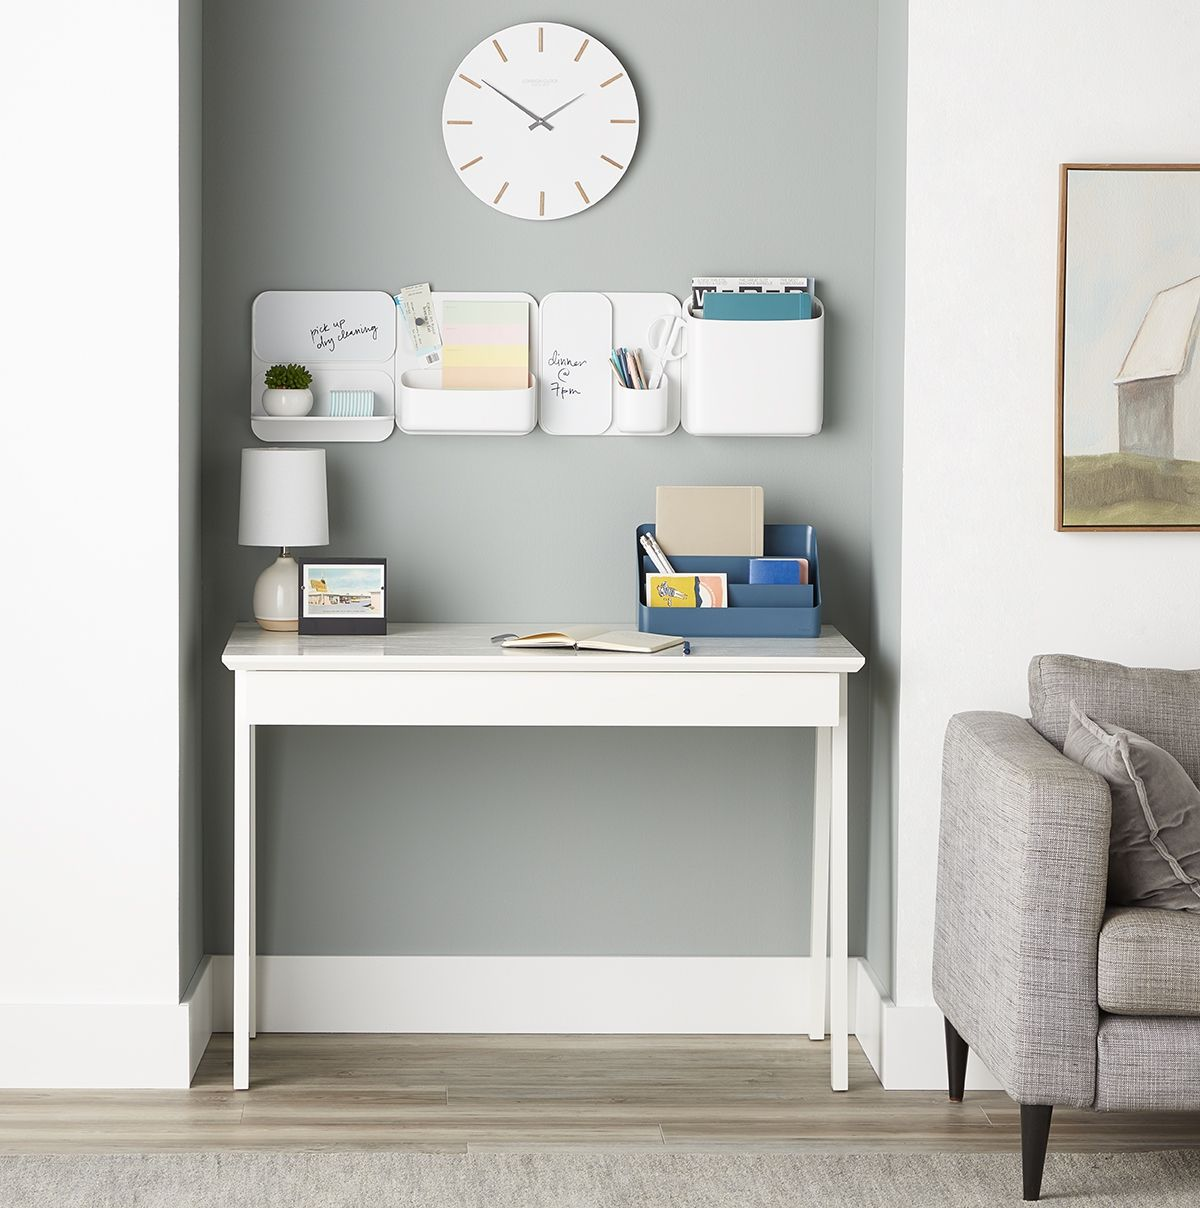 The Best Desk Is An Organized Check Out A Few Of Our Freestanding Solutions Perfect For Any Small E